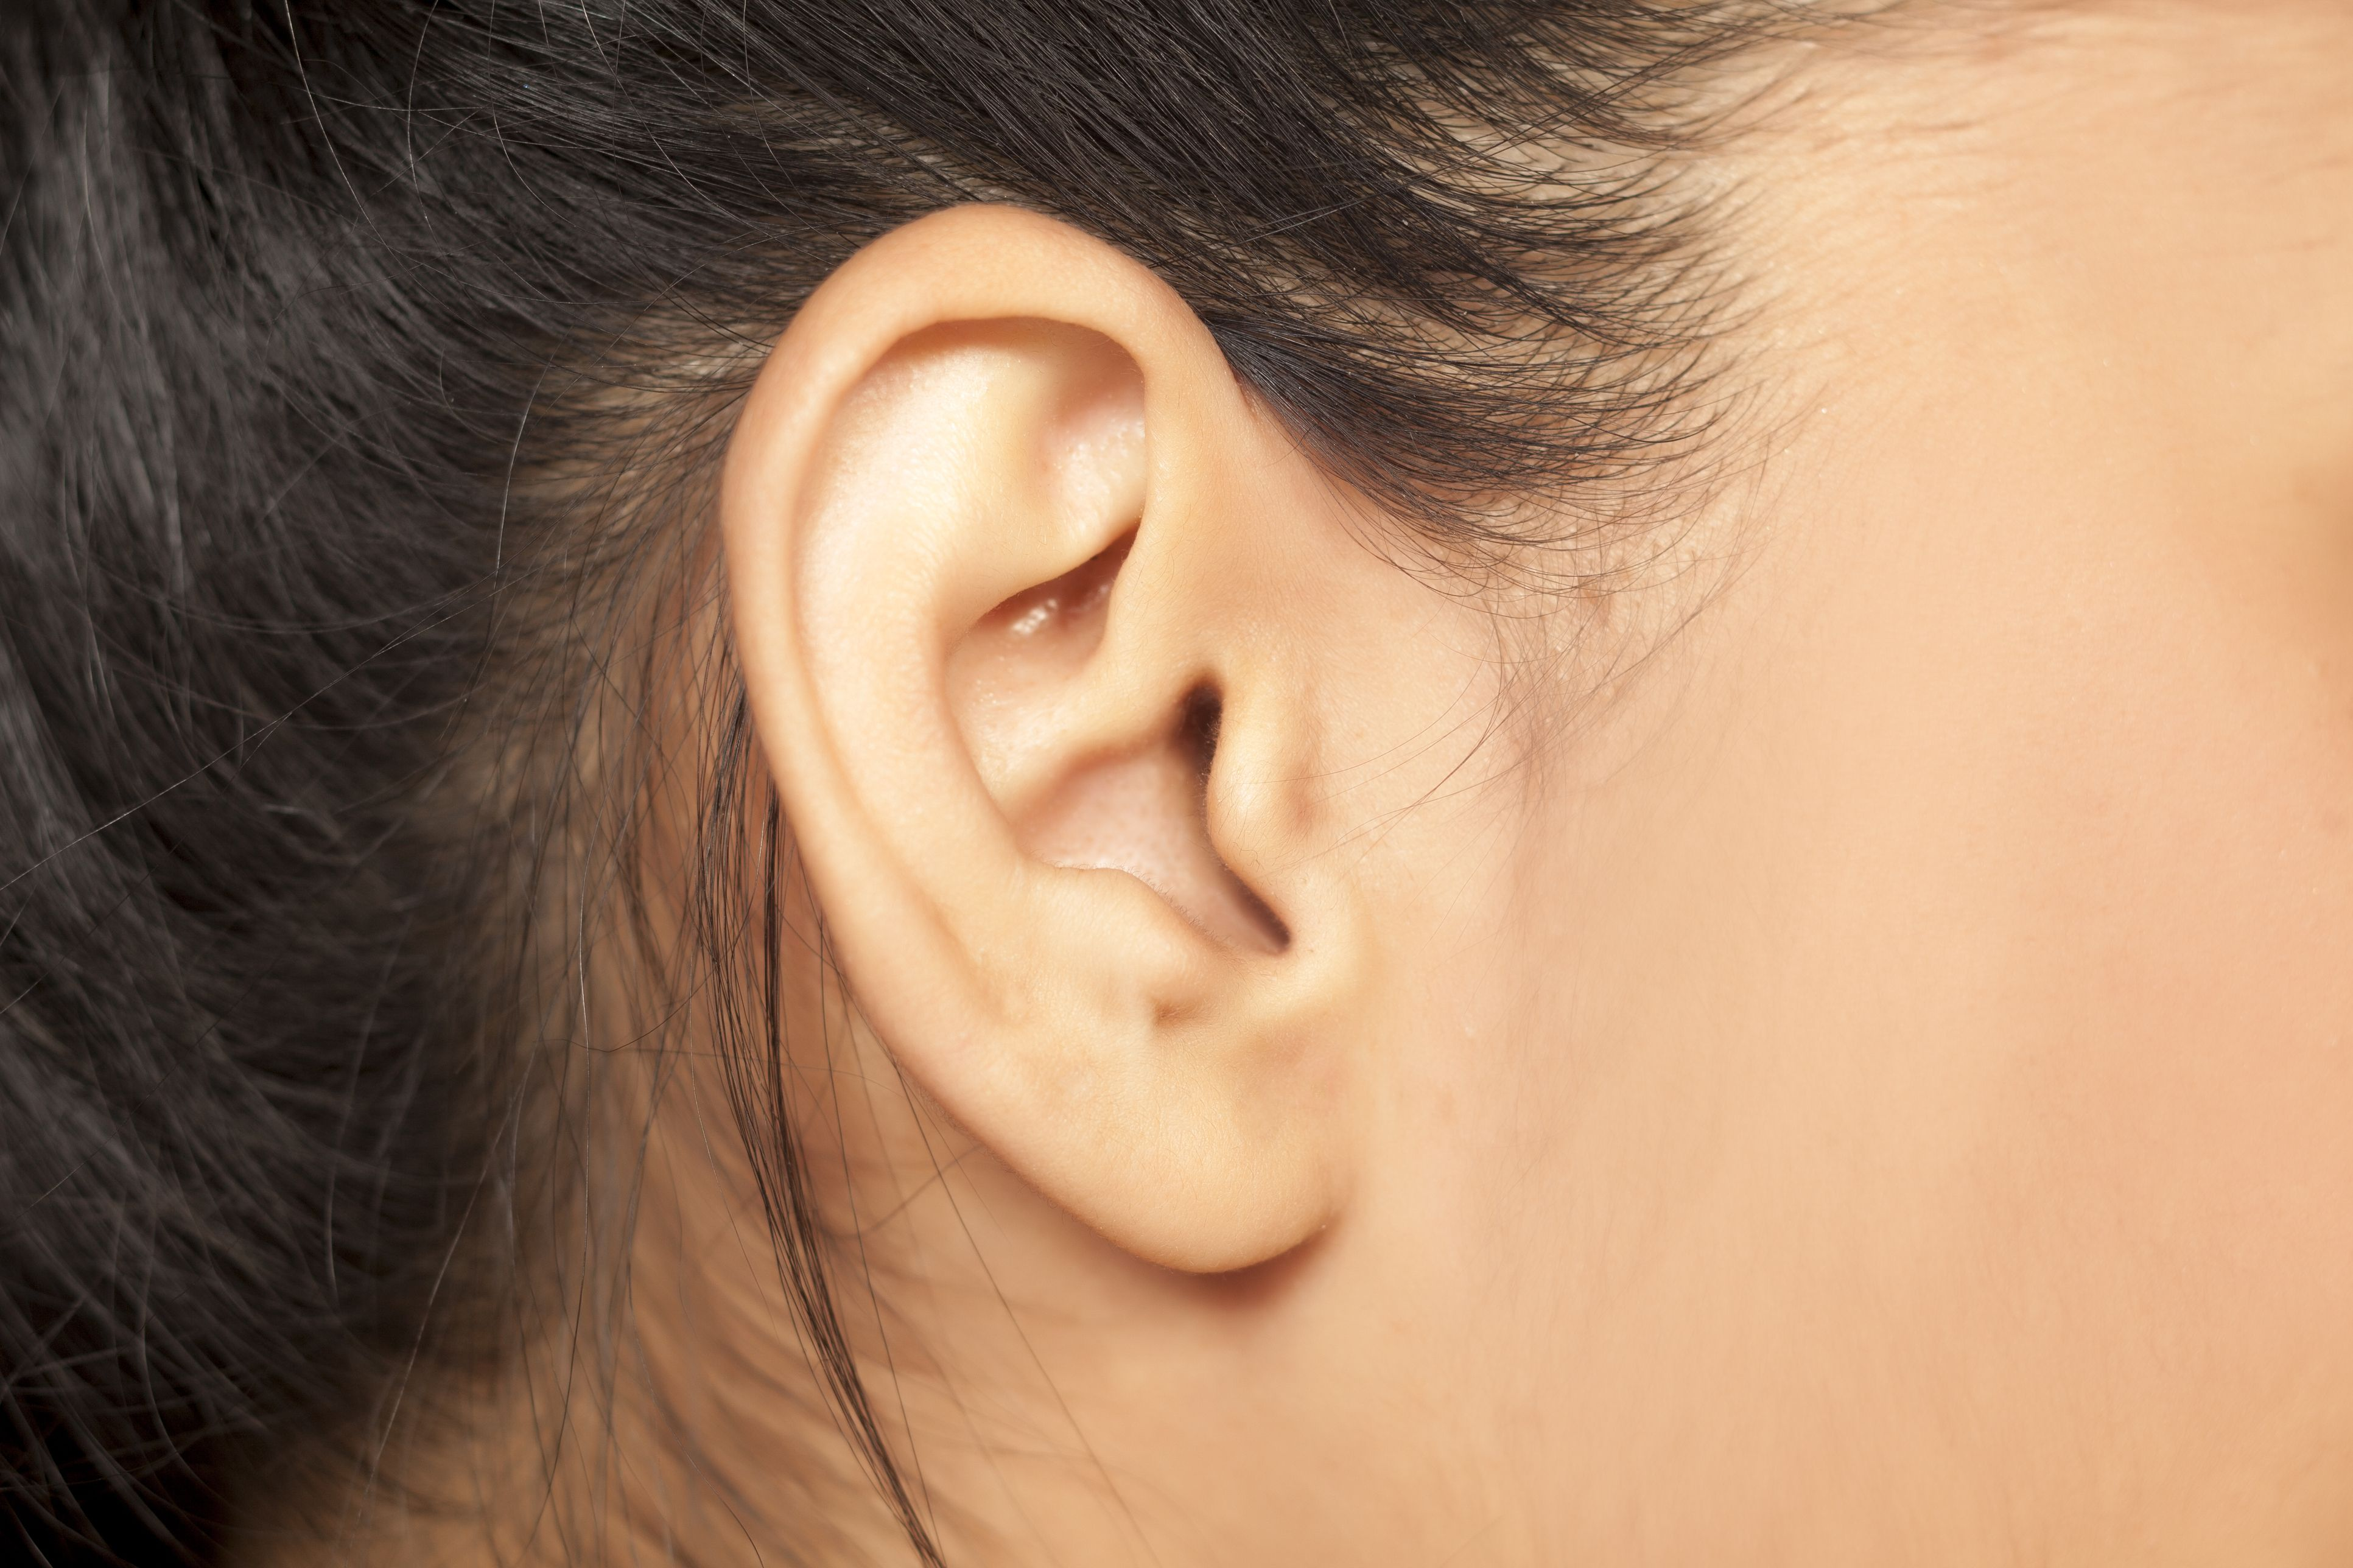 Pimple In Ear: How To Prevent And Treat Ear Acne